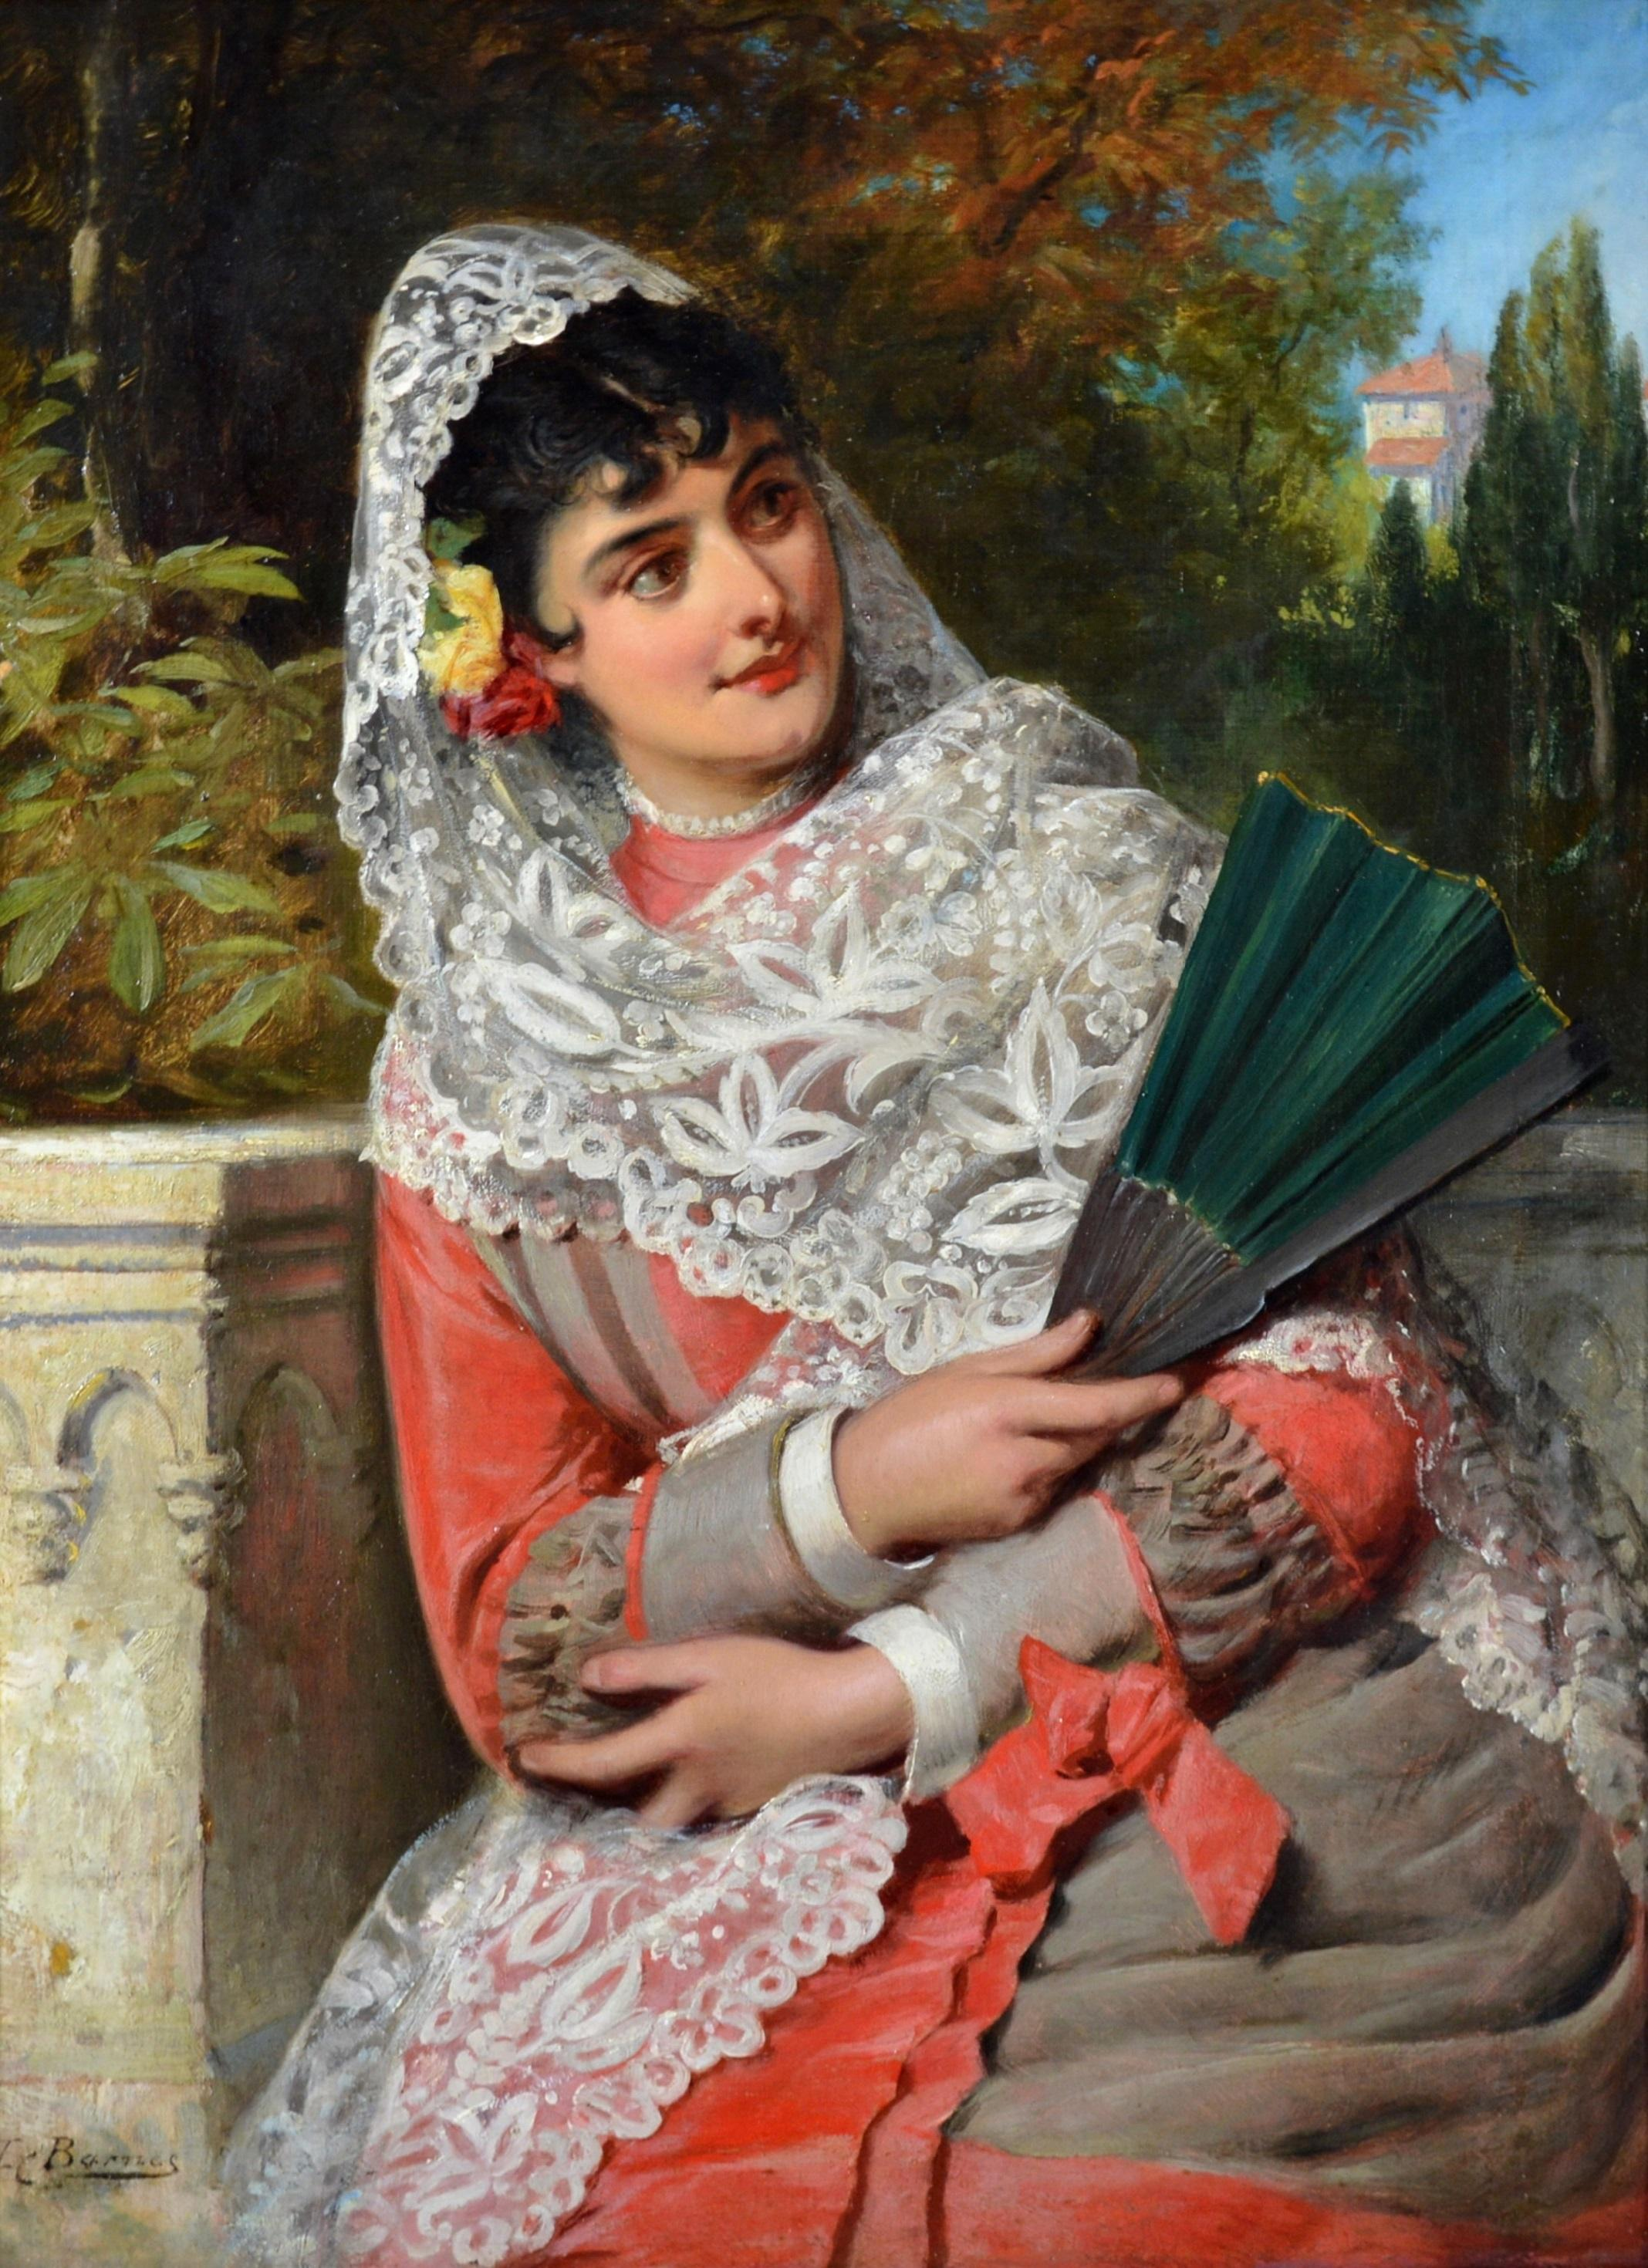 Andalusian Beauty - 19th Century Oil Painting Portrait of Spanish Girl